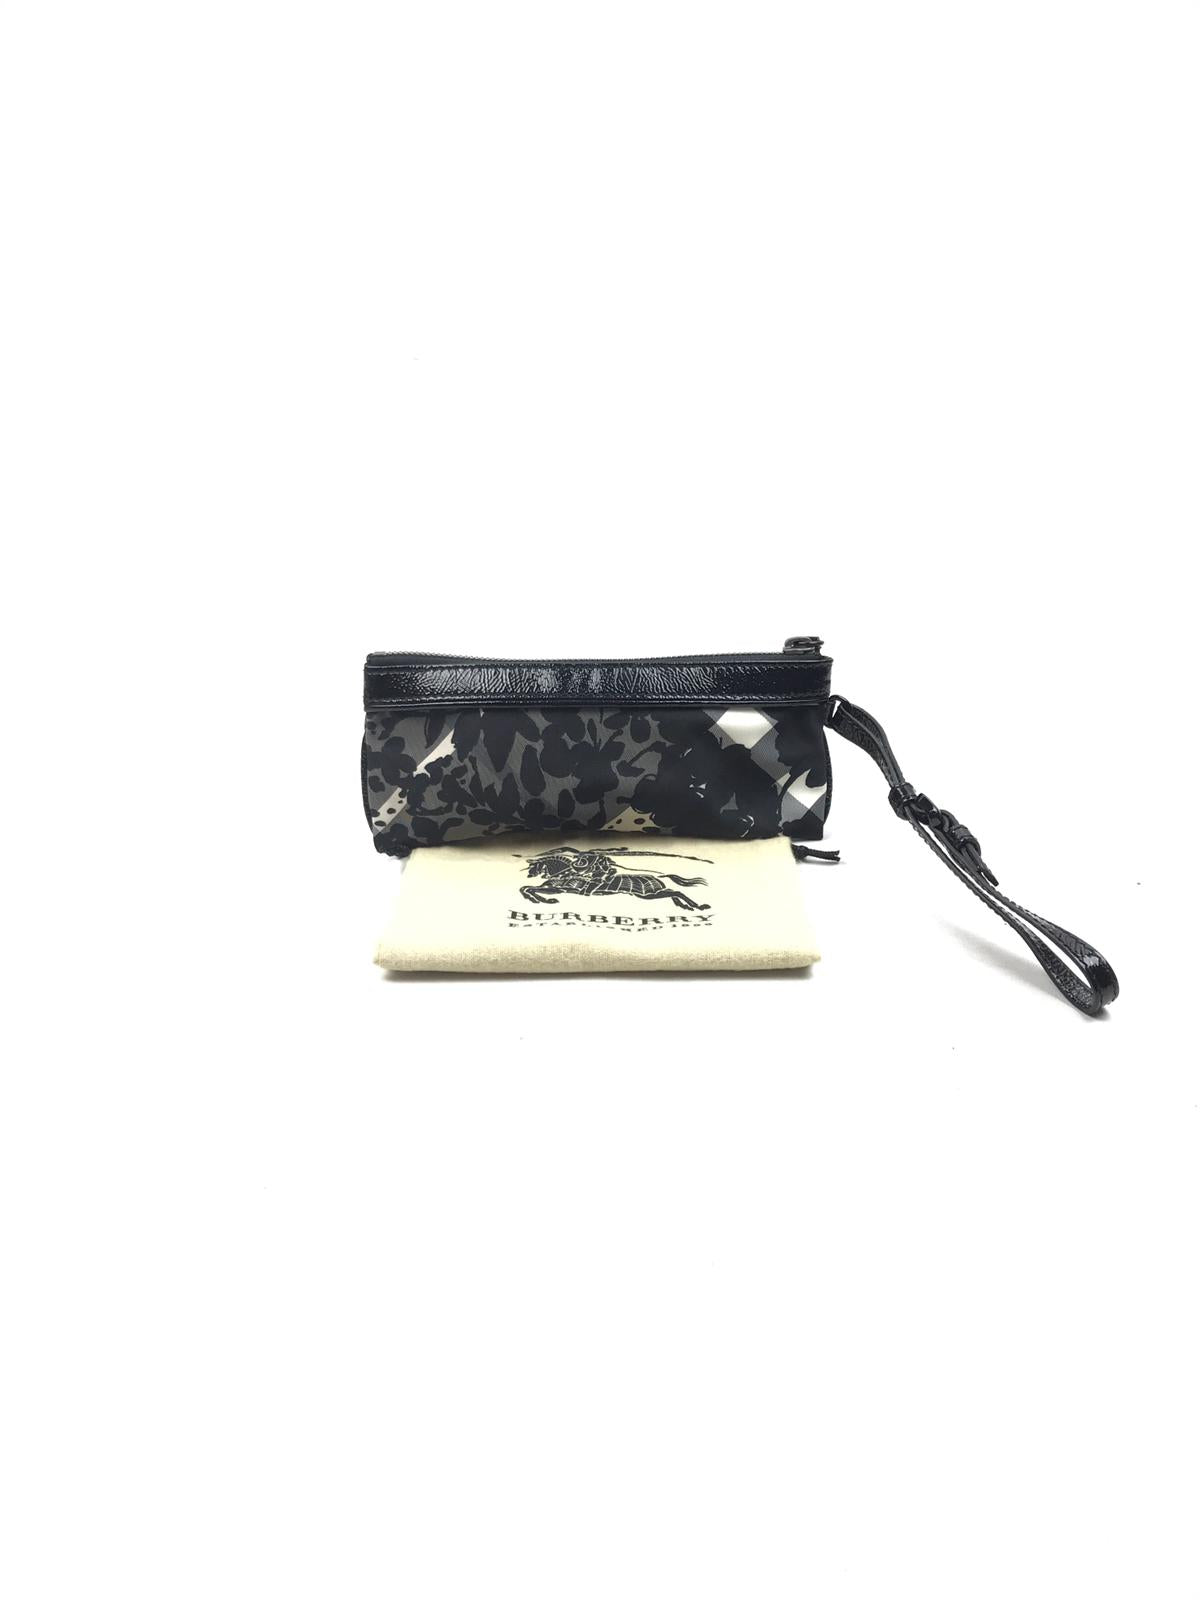 BURBERRY Black/Grey Check Wristlet w/ Patent Leather Trim